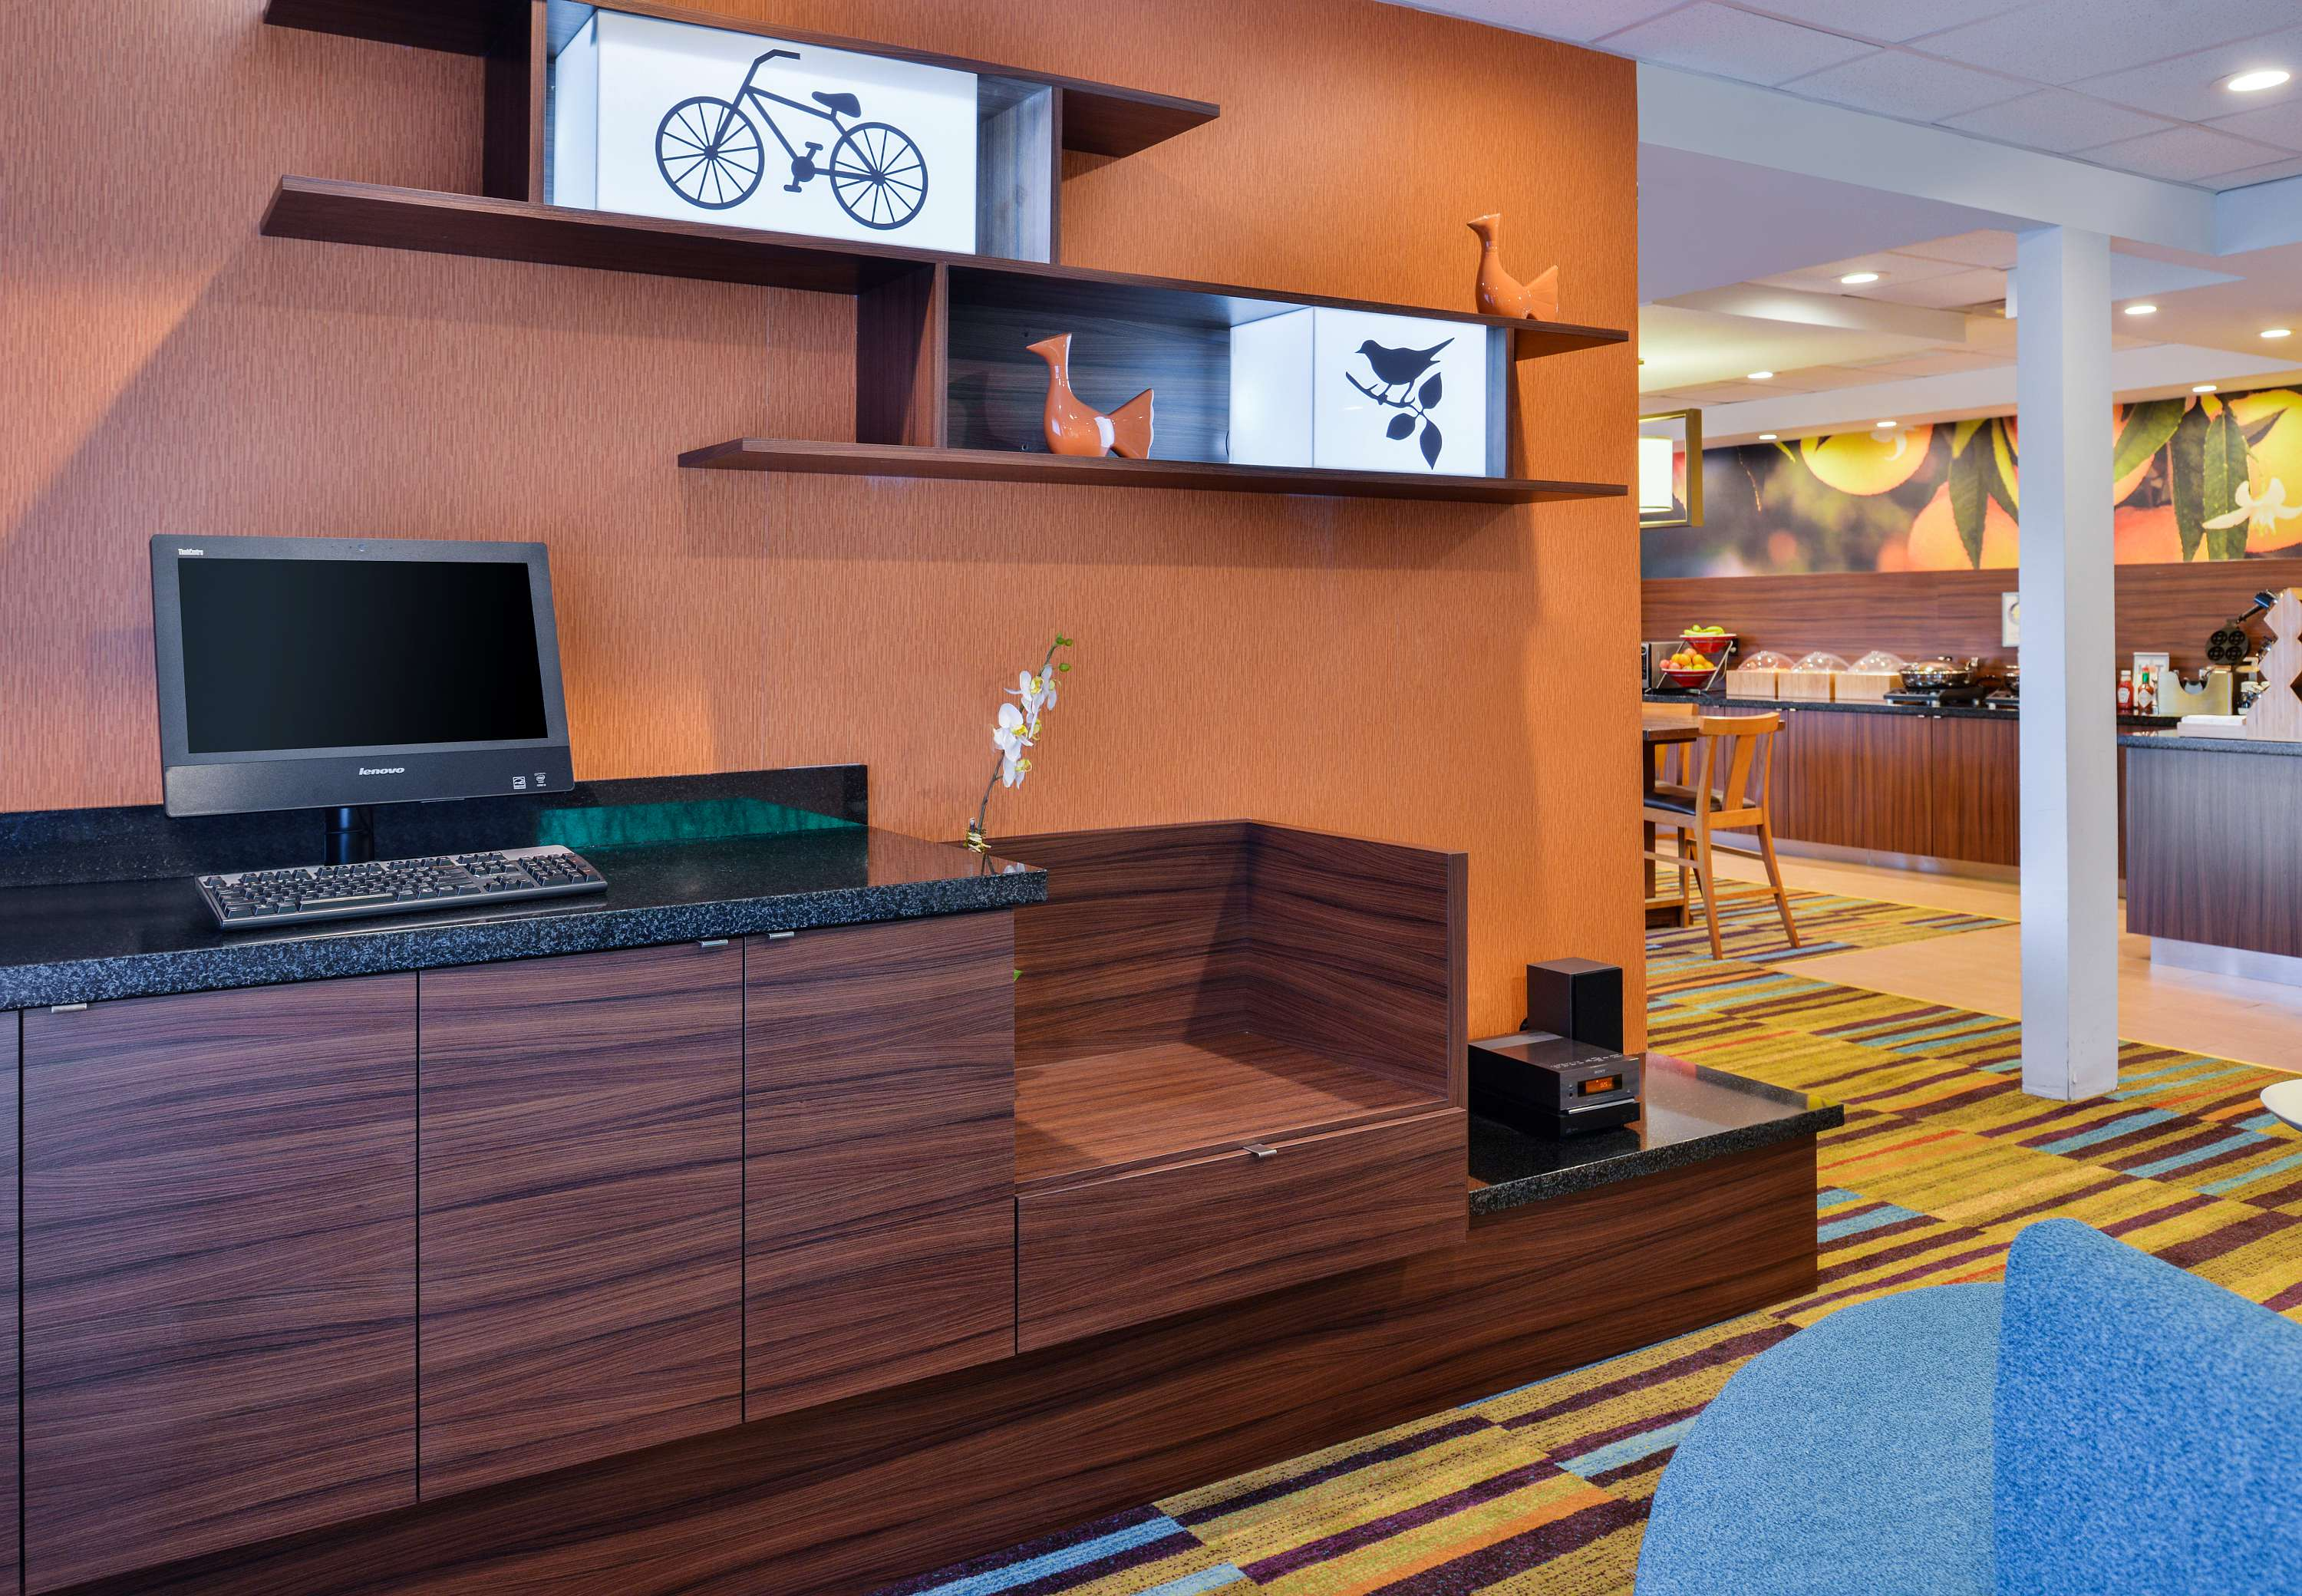 Holiday Inn Hotel & Suites Beaumont-Plaza (I-10 & Walden